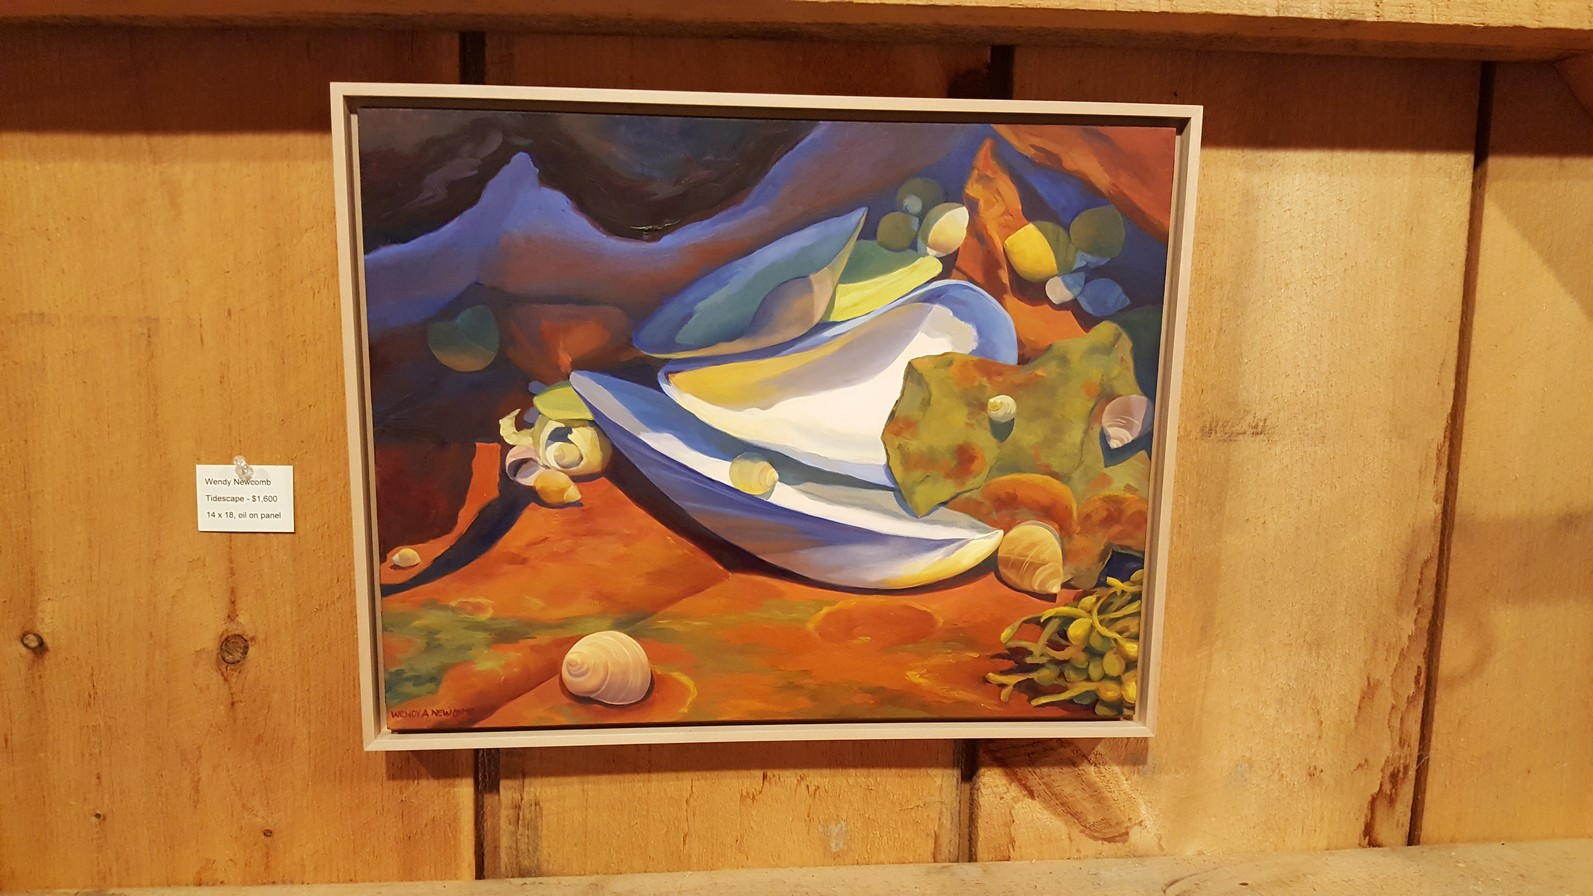 Artwork of Wendy Newcomb